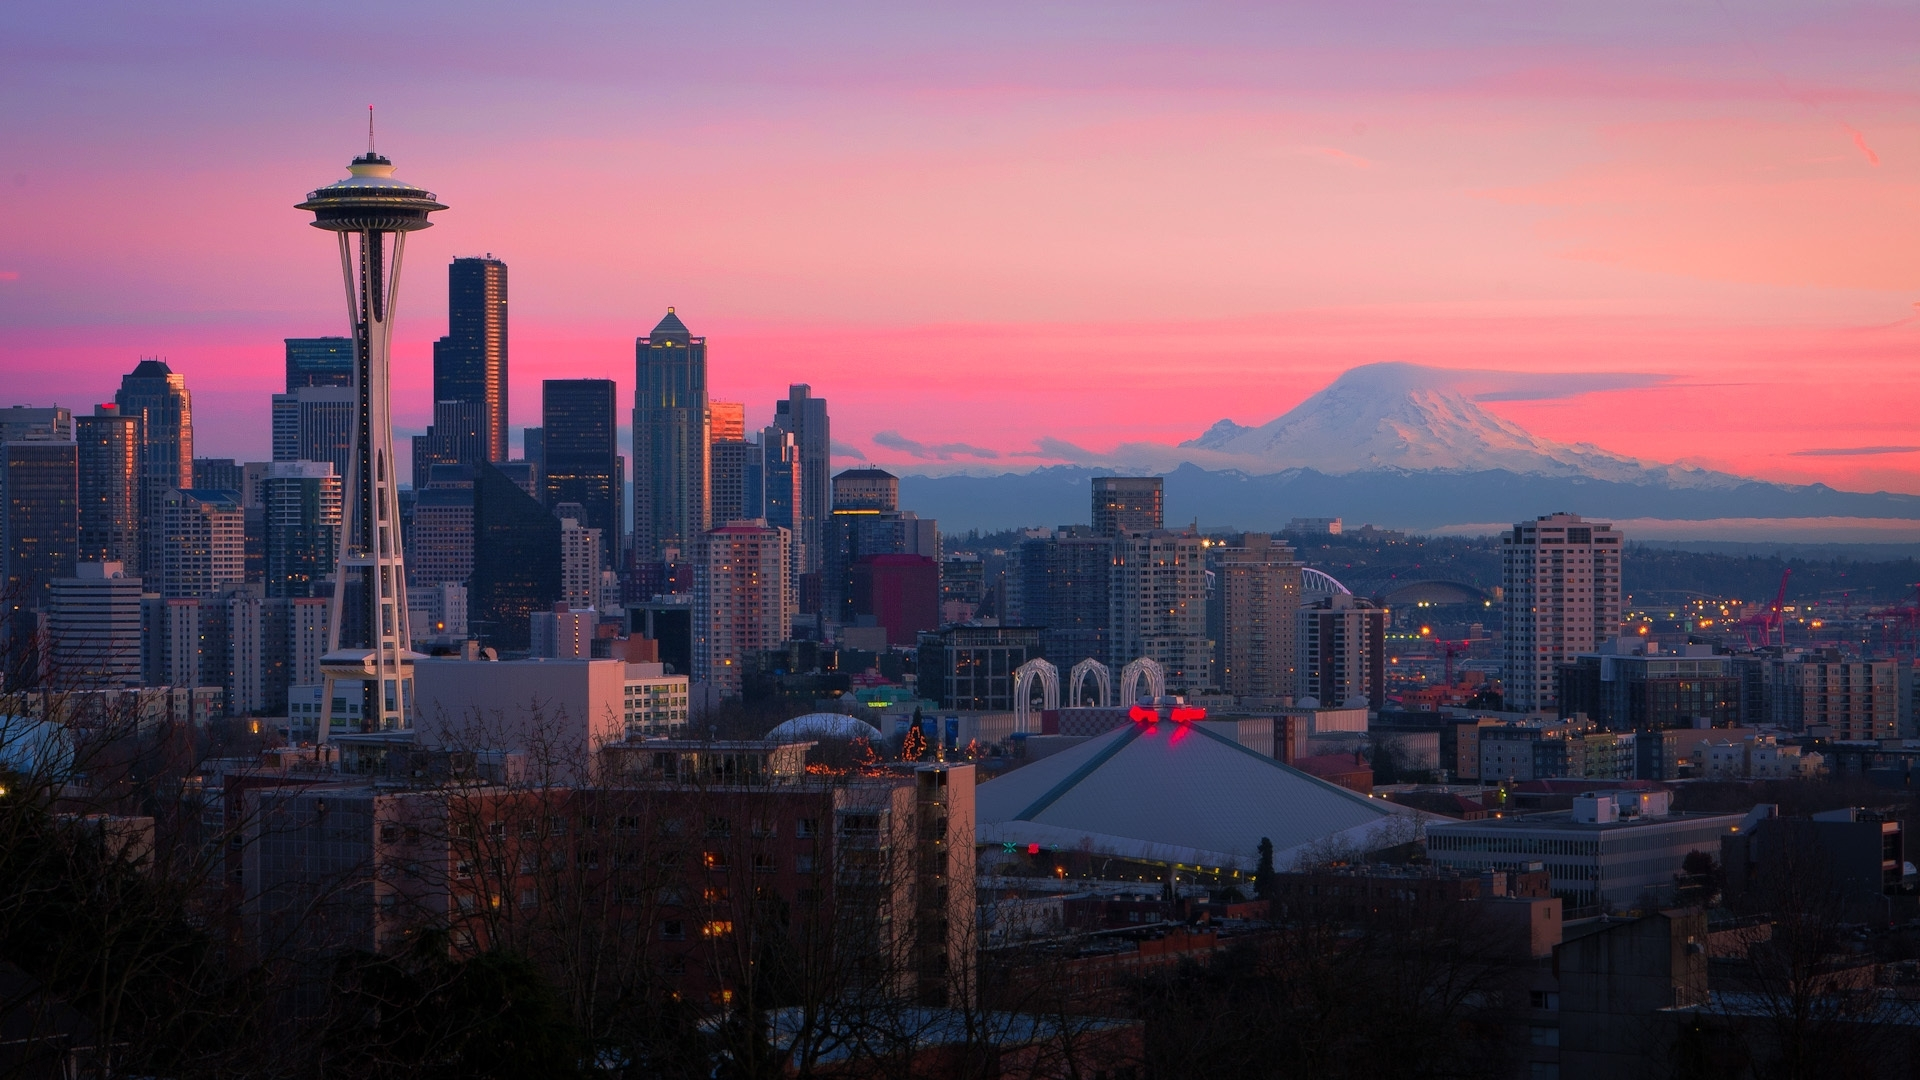 seattle wallpapers high resolution | seattle wallpapers, backgrounds